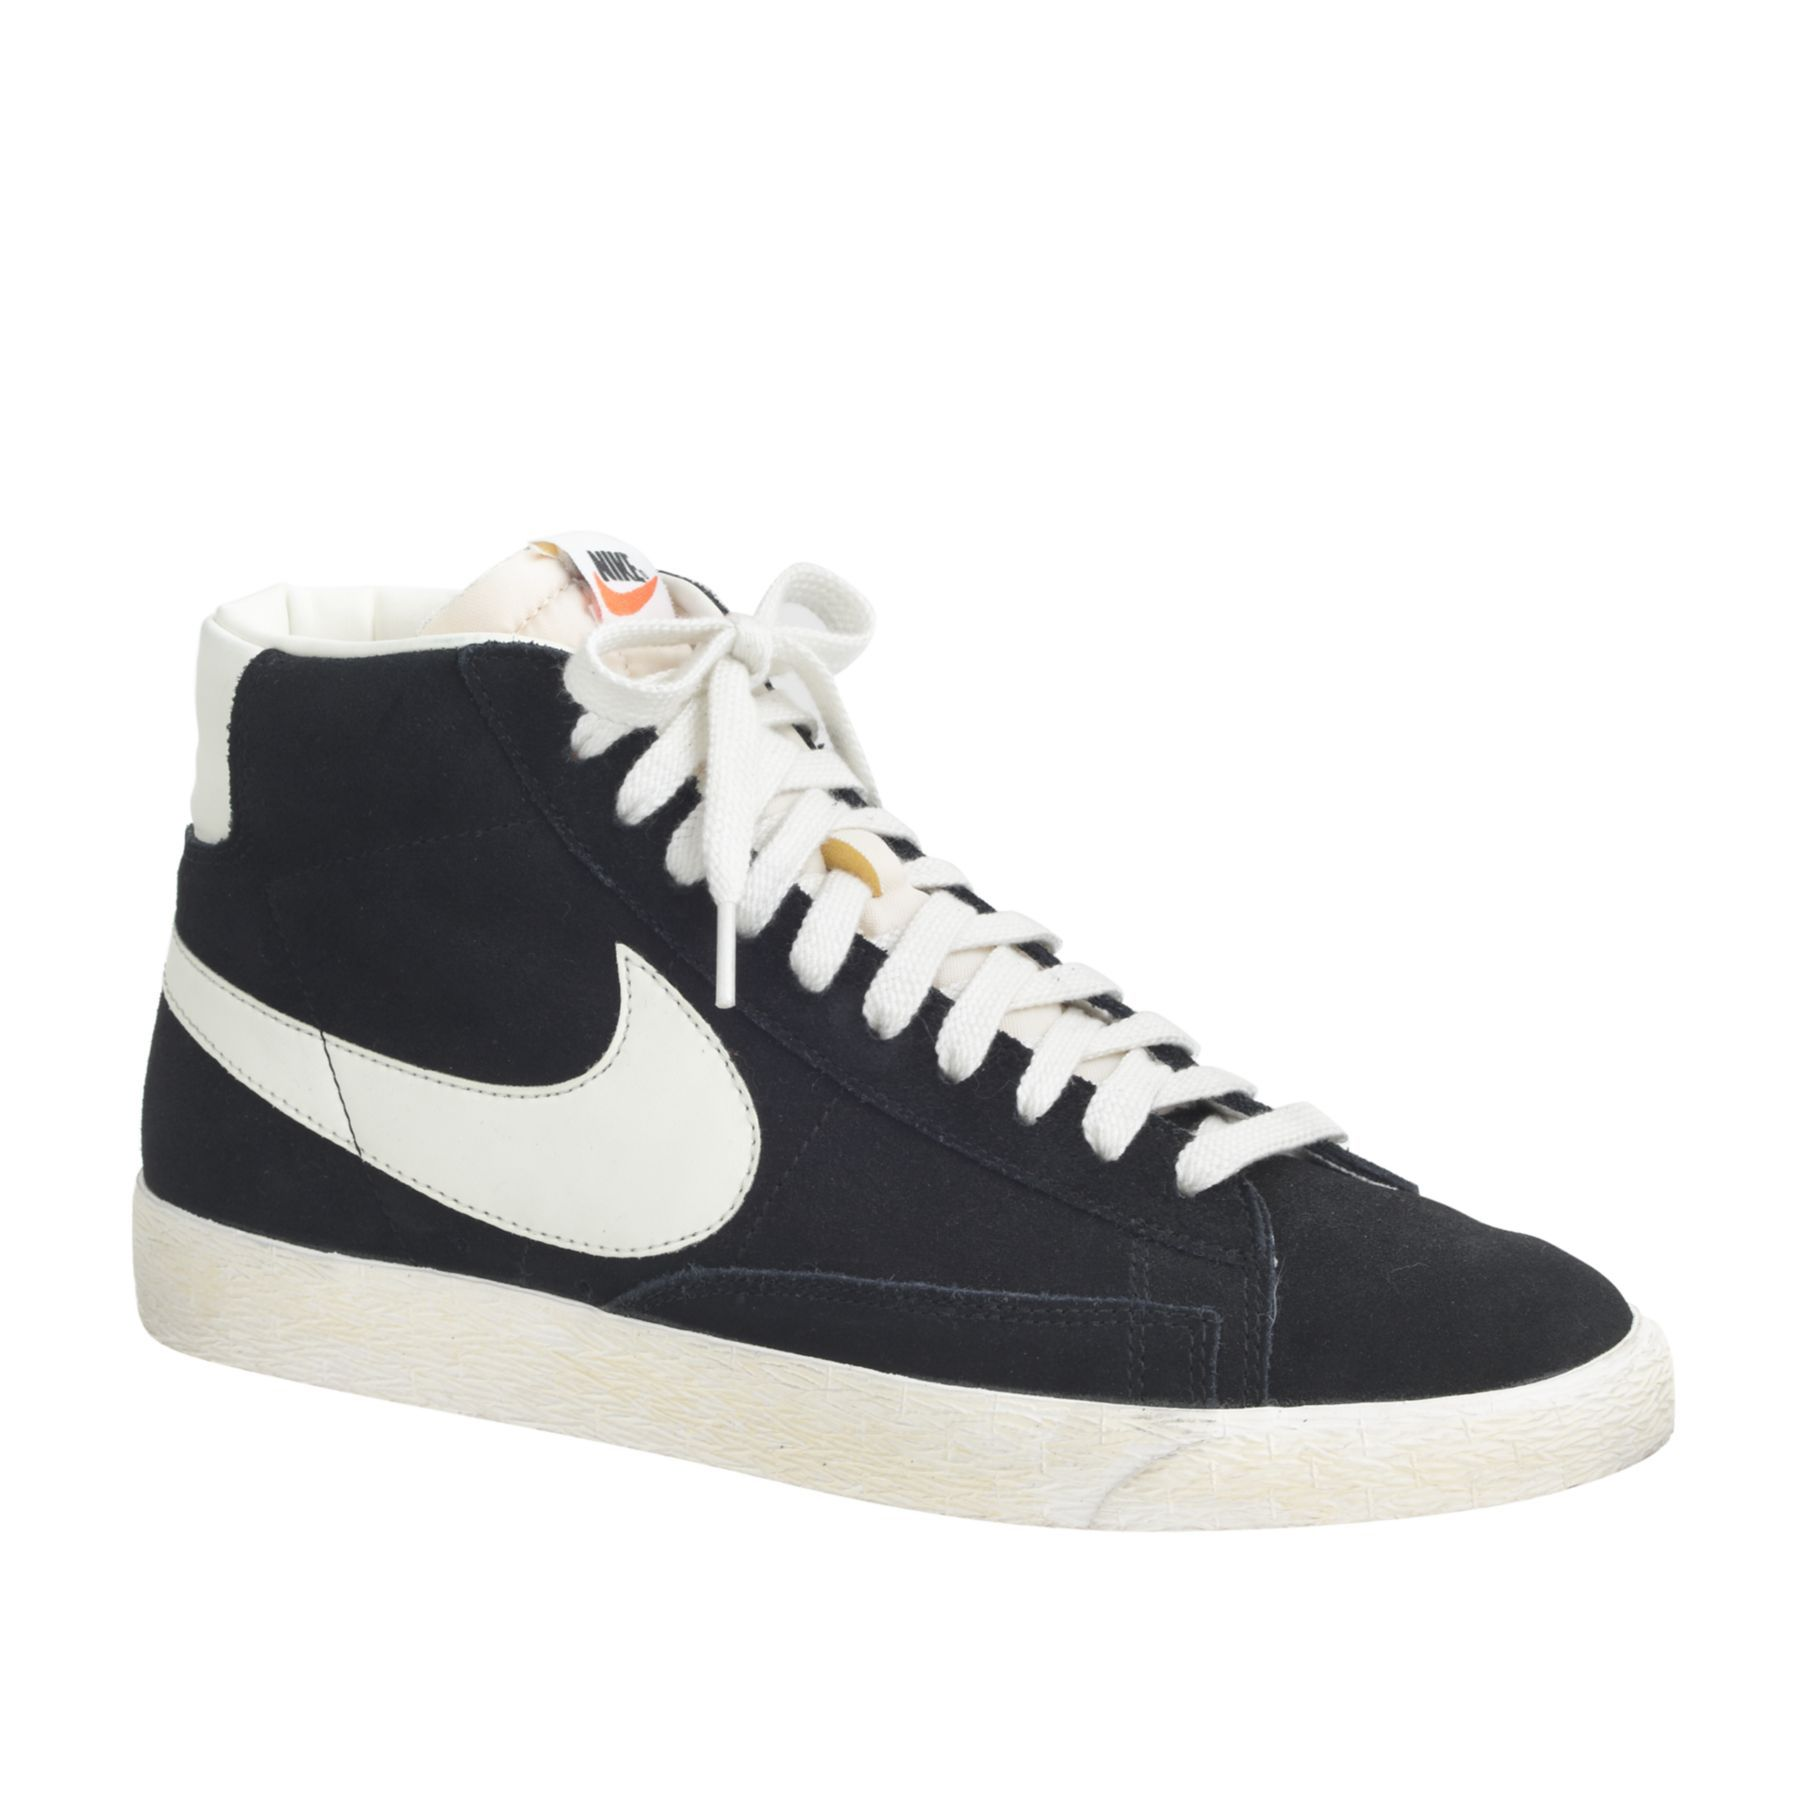 b5da01de2f7 Men s Nike Blazer high suede vintage sneakers in black sail at J.Crew.